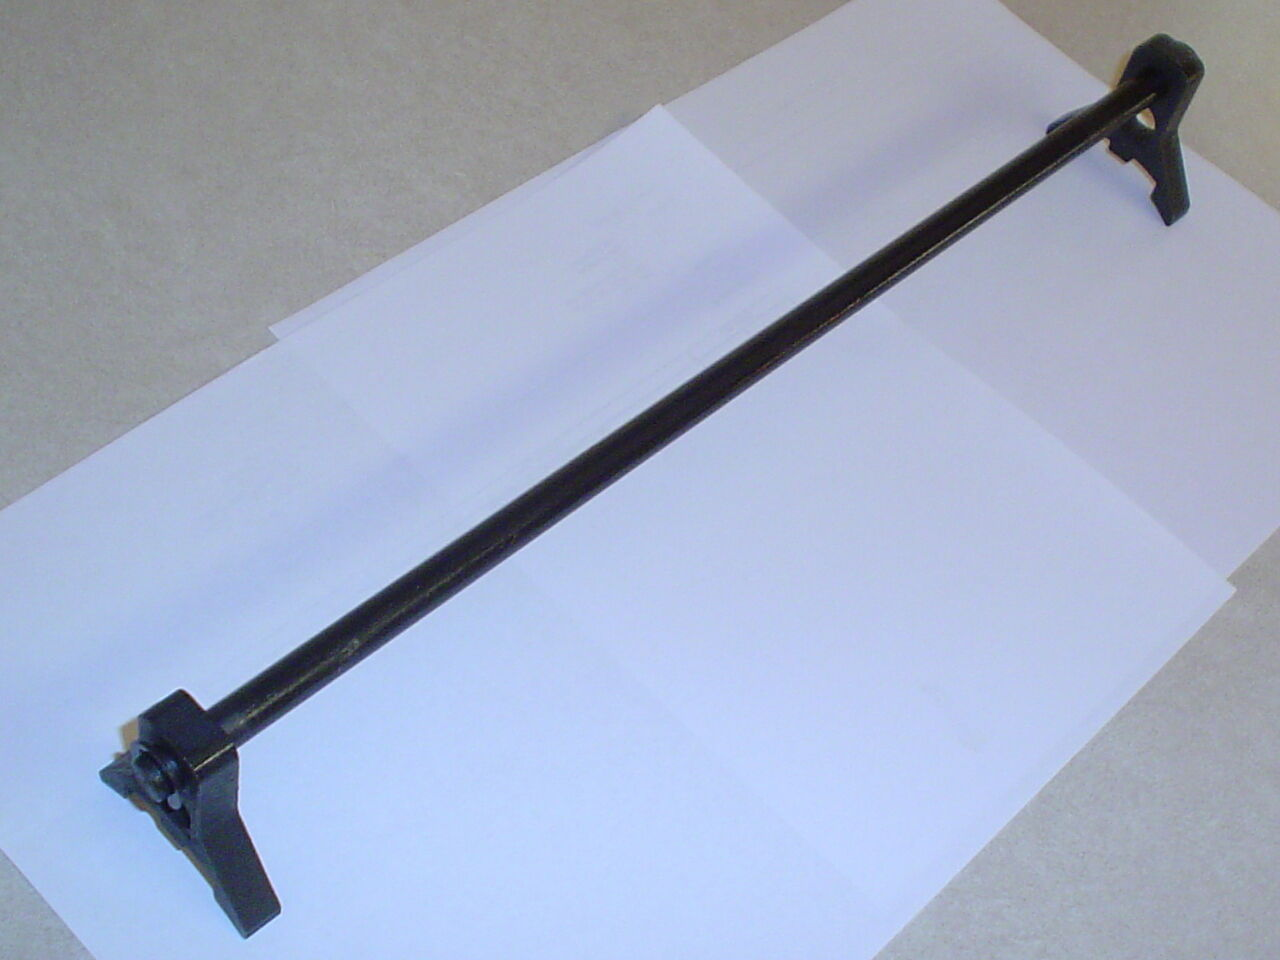 Planer Knife Setting Gage For 3-3/16 Heads, 20 Inch Planers